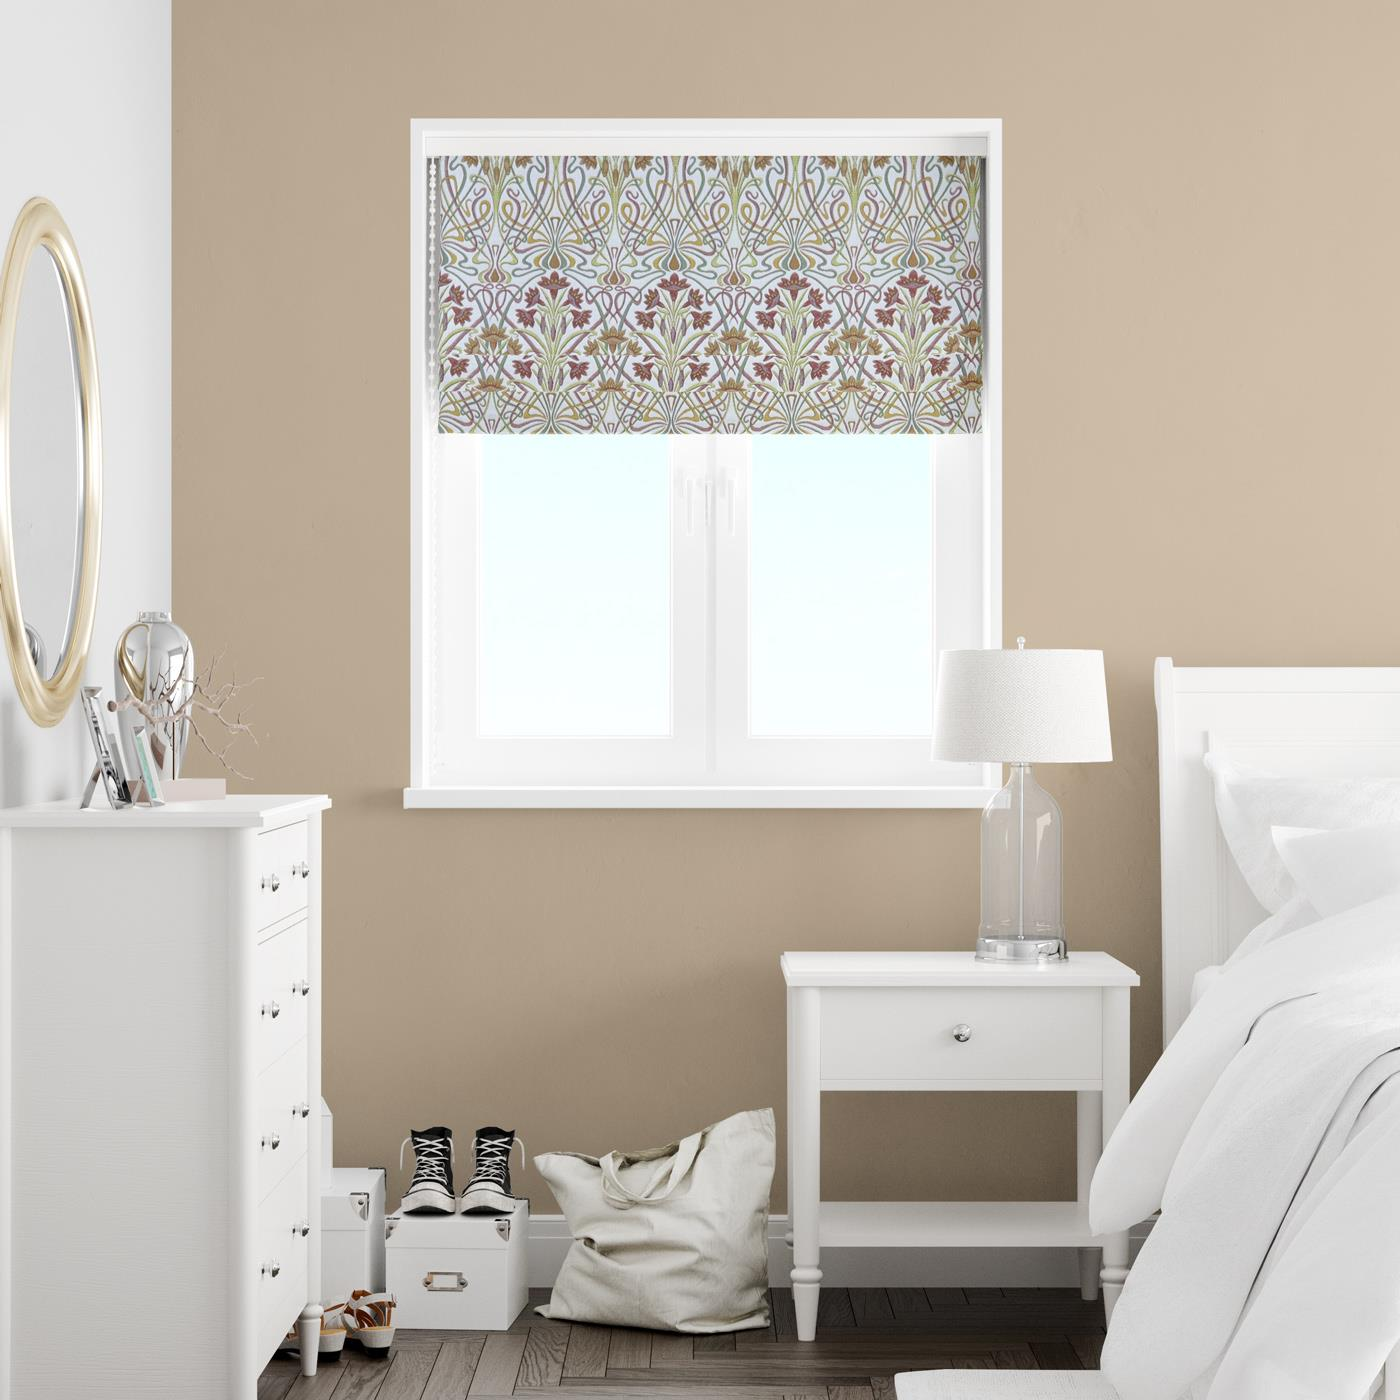 Tiffany Autumn Made To Measure Roman Blind -  - Ideal Textiles